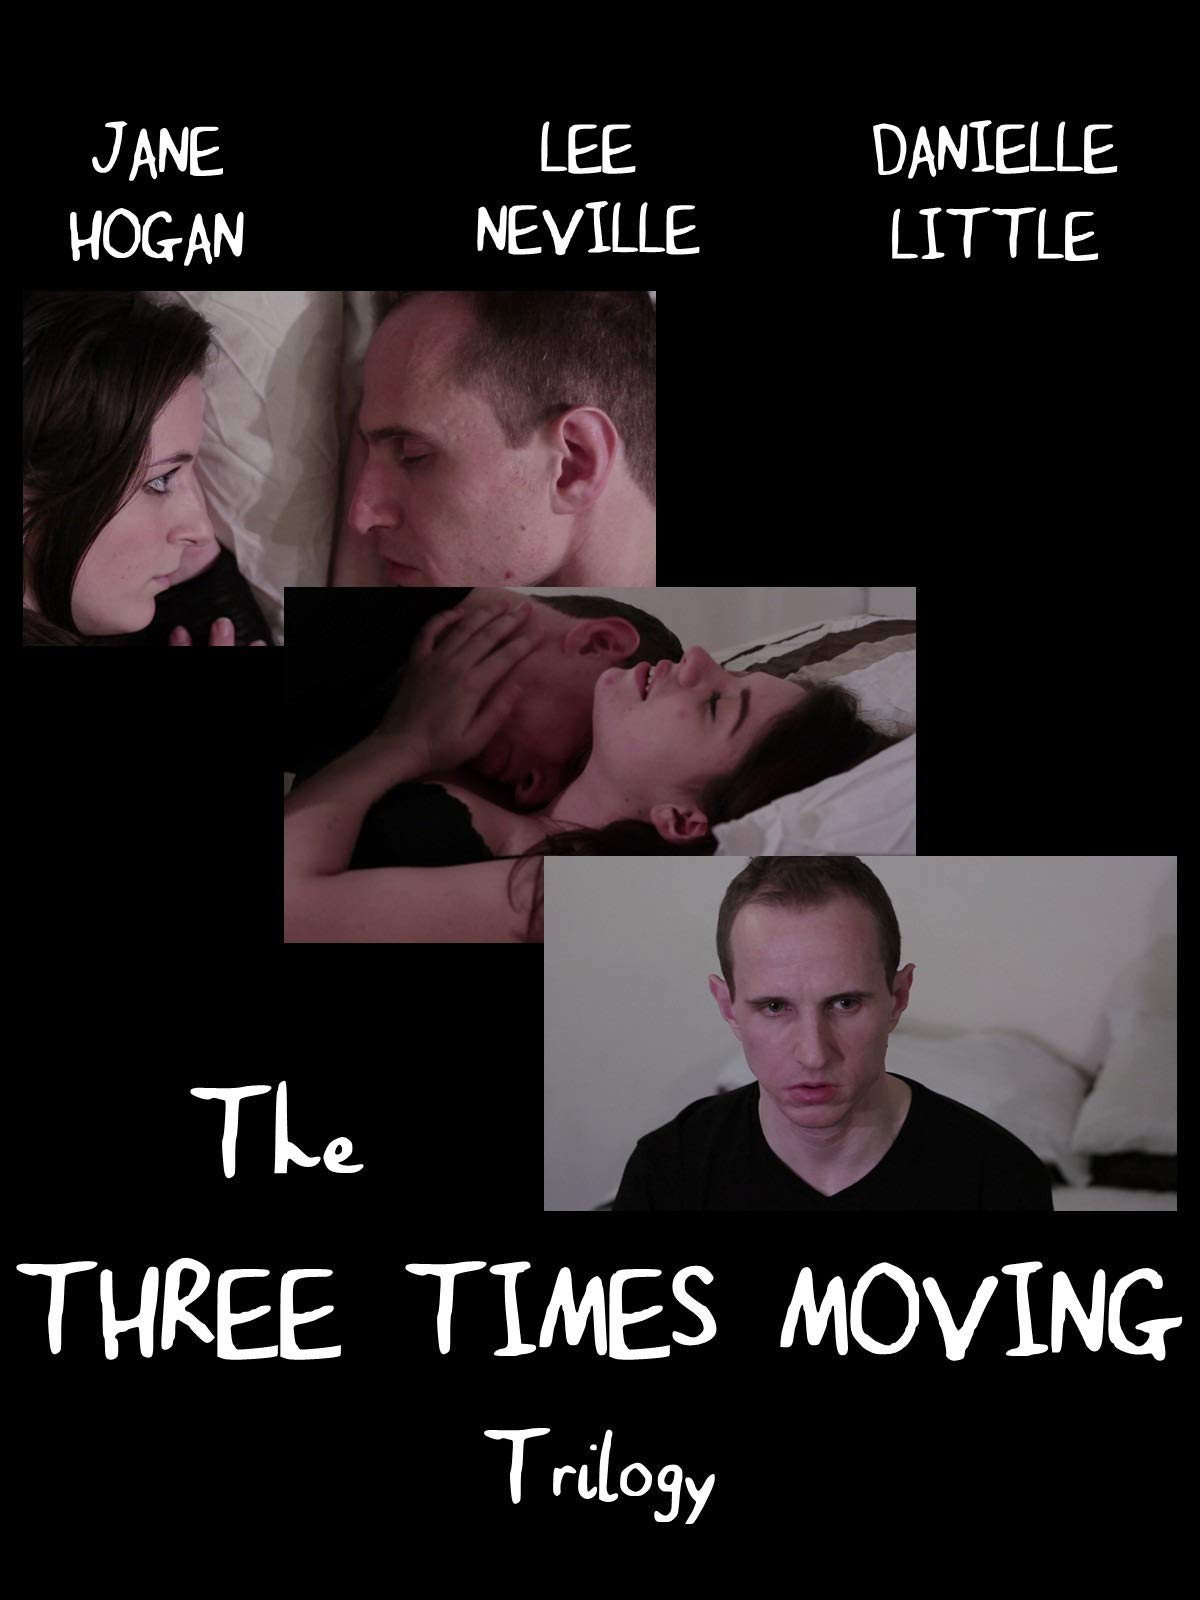 The Three Times Moving Trilogy